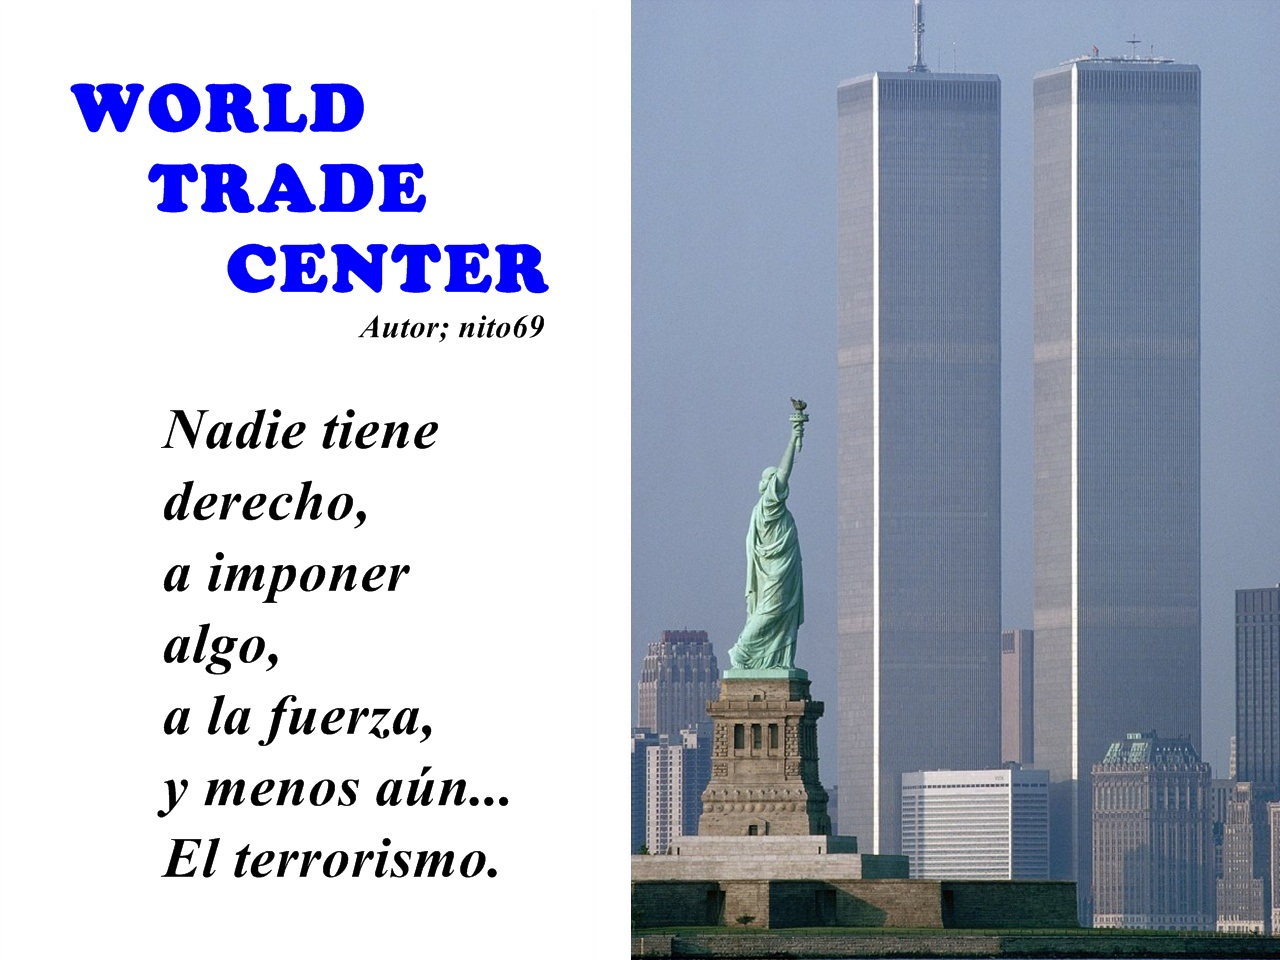 WORLD TRADE CENTER ( Frase homenaje ).